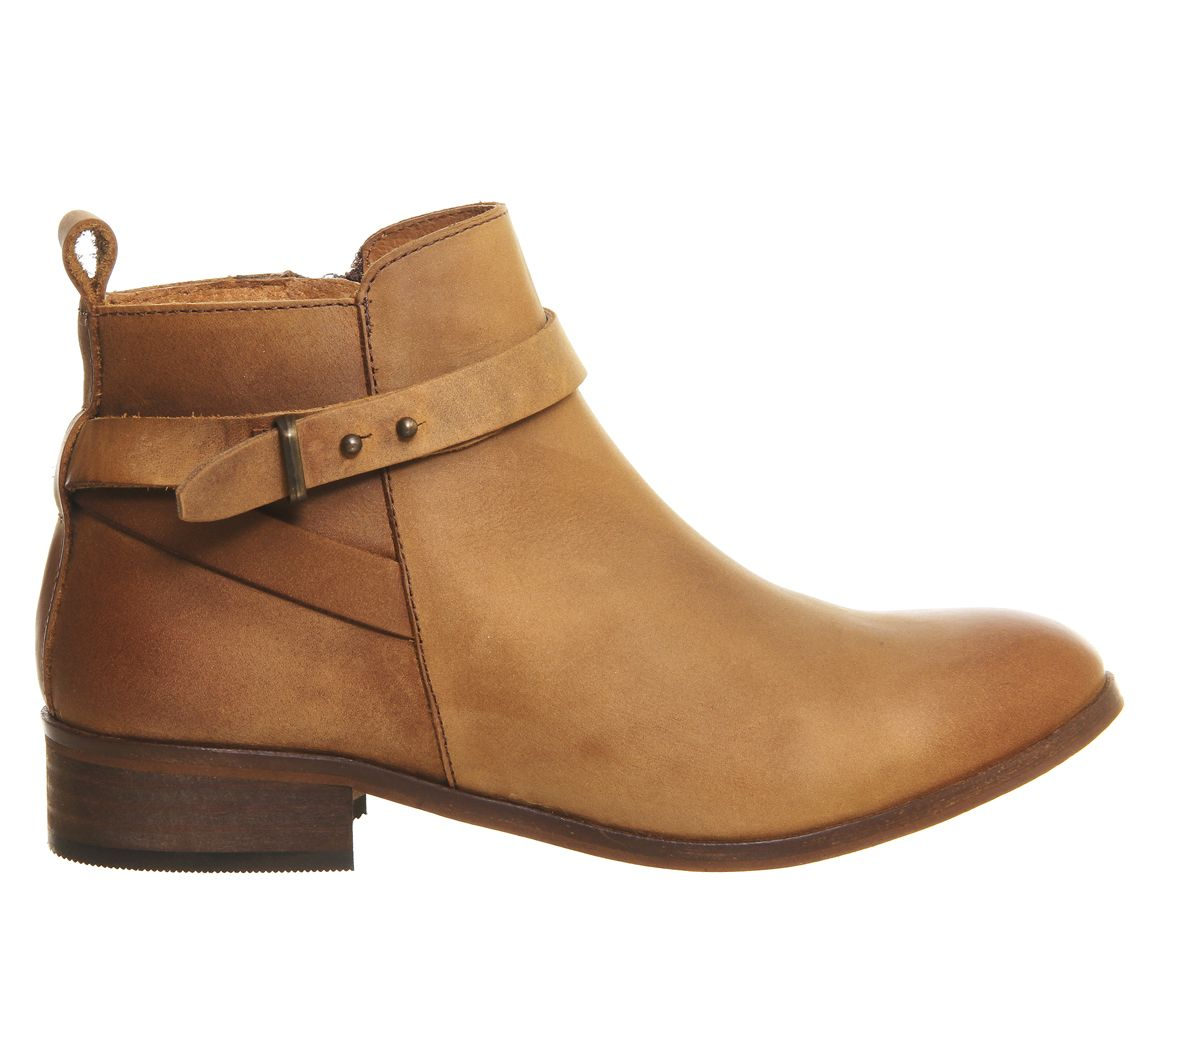 Ankle Boots Tan Leather